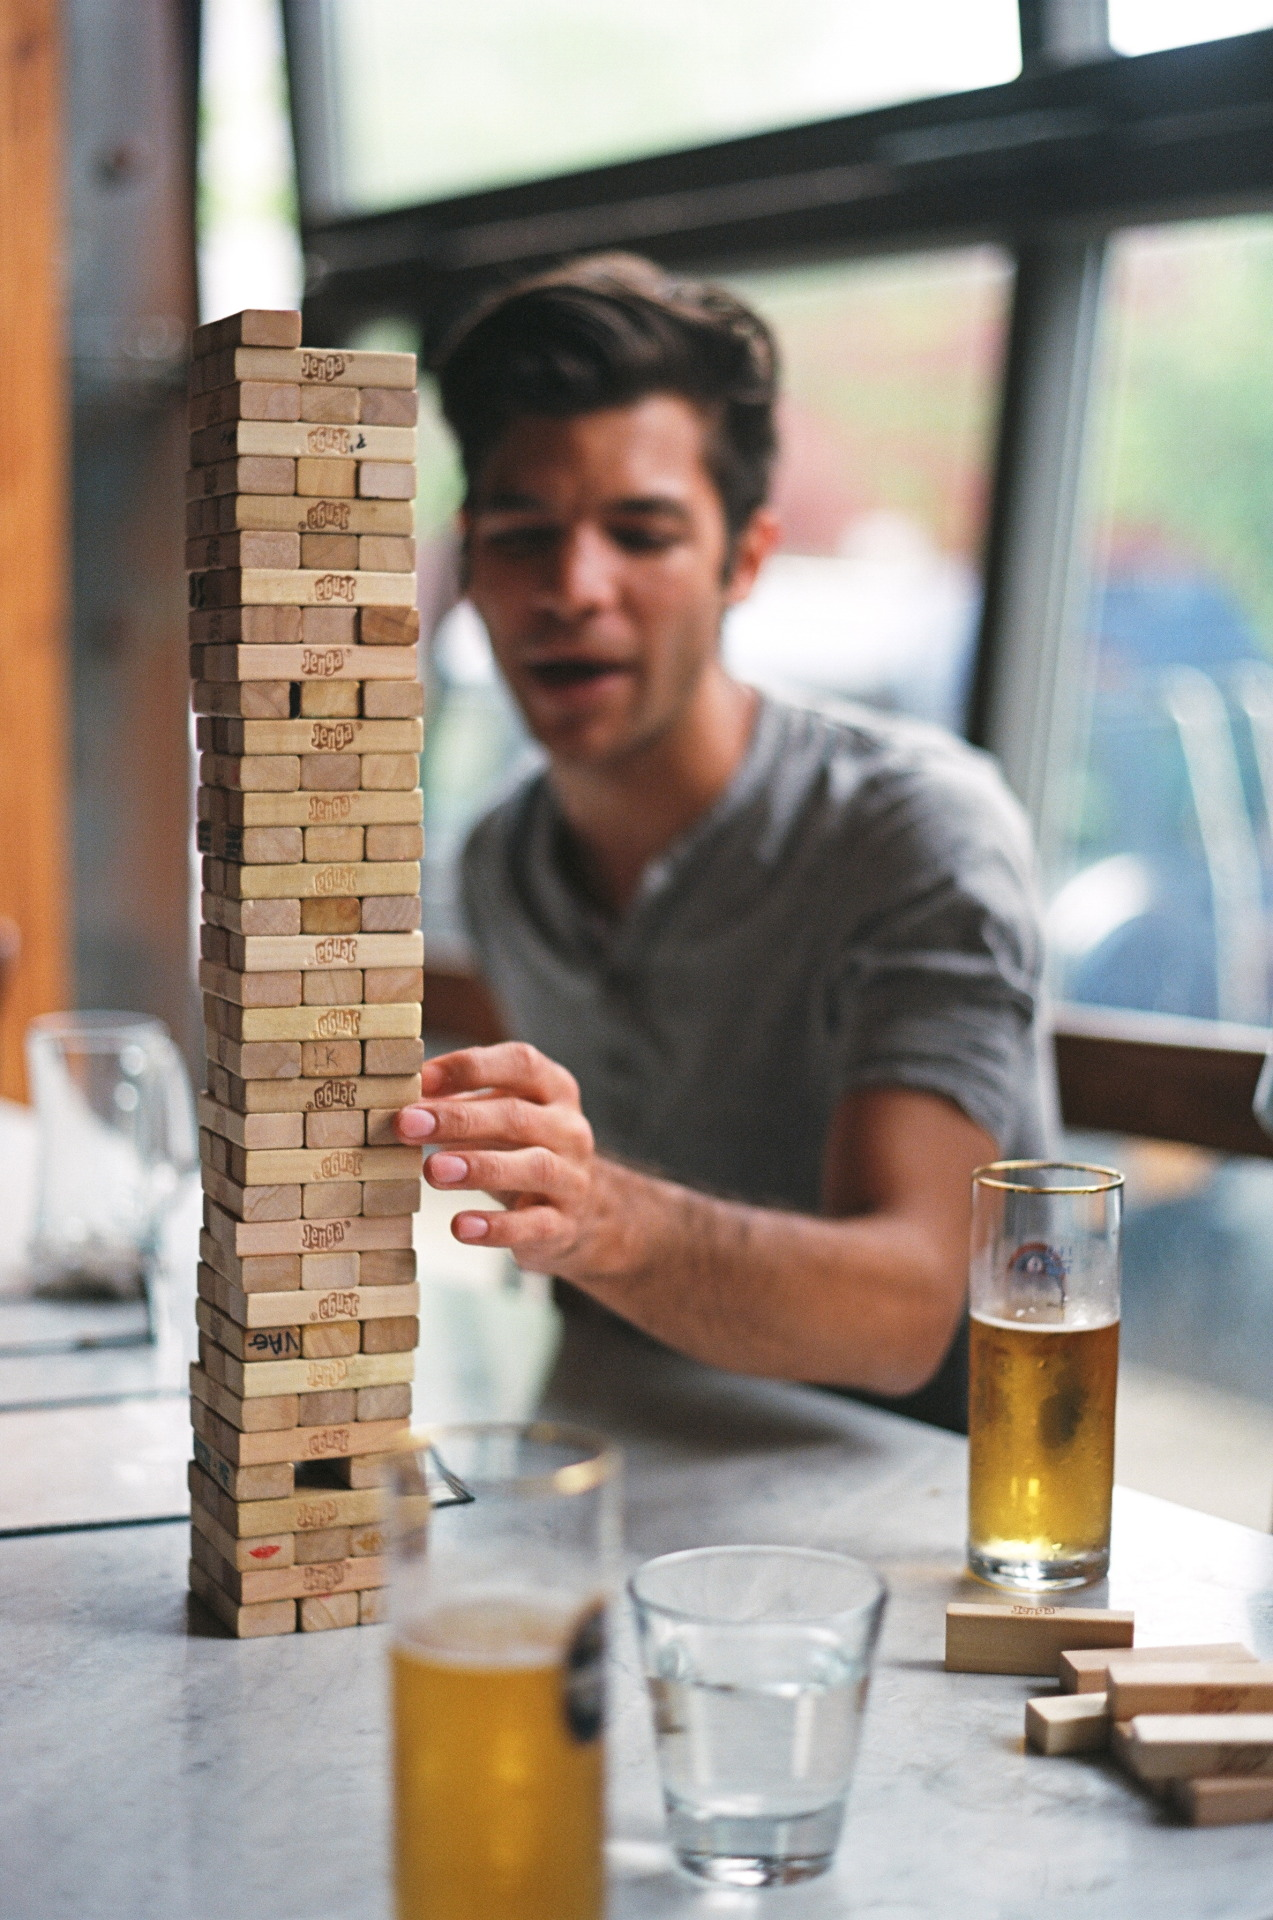 Double Jenga Spritzenhaus, Greenpoint, Brooklyn May 2013